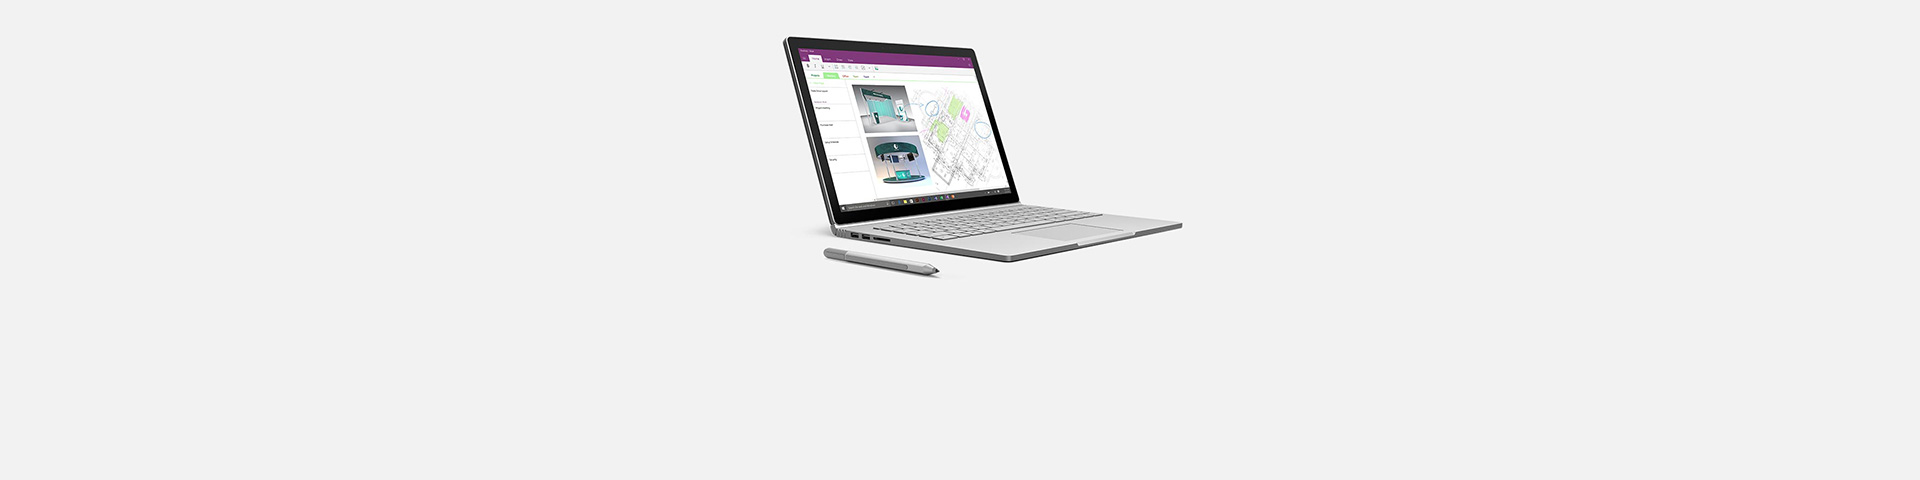 一台 Surface Book